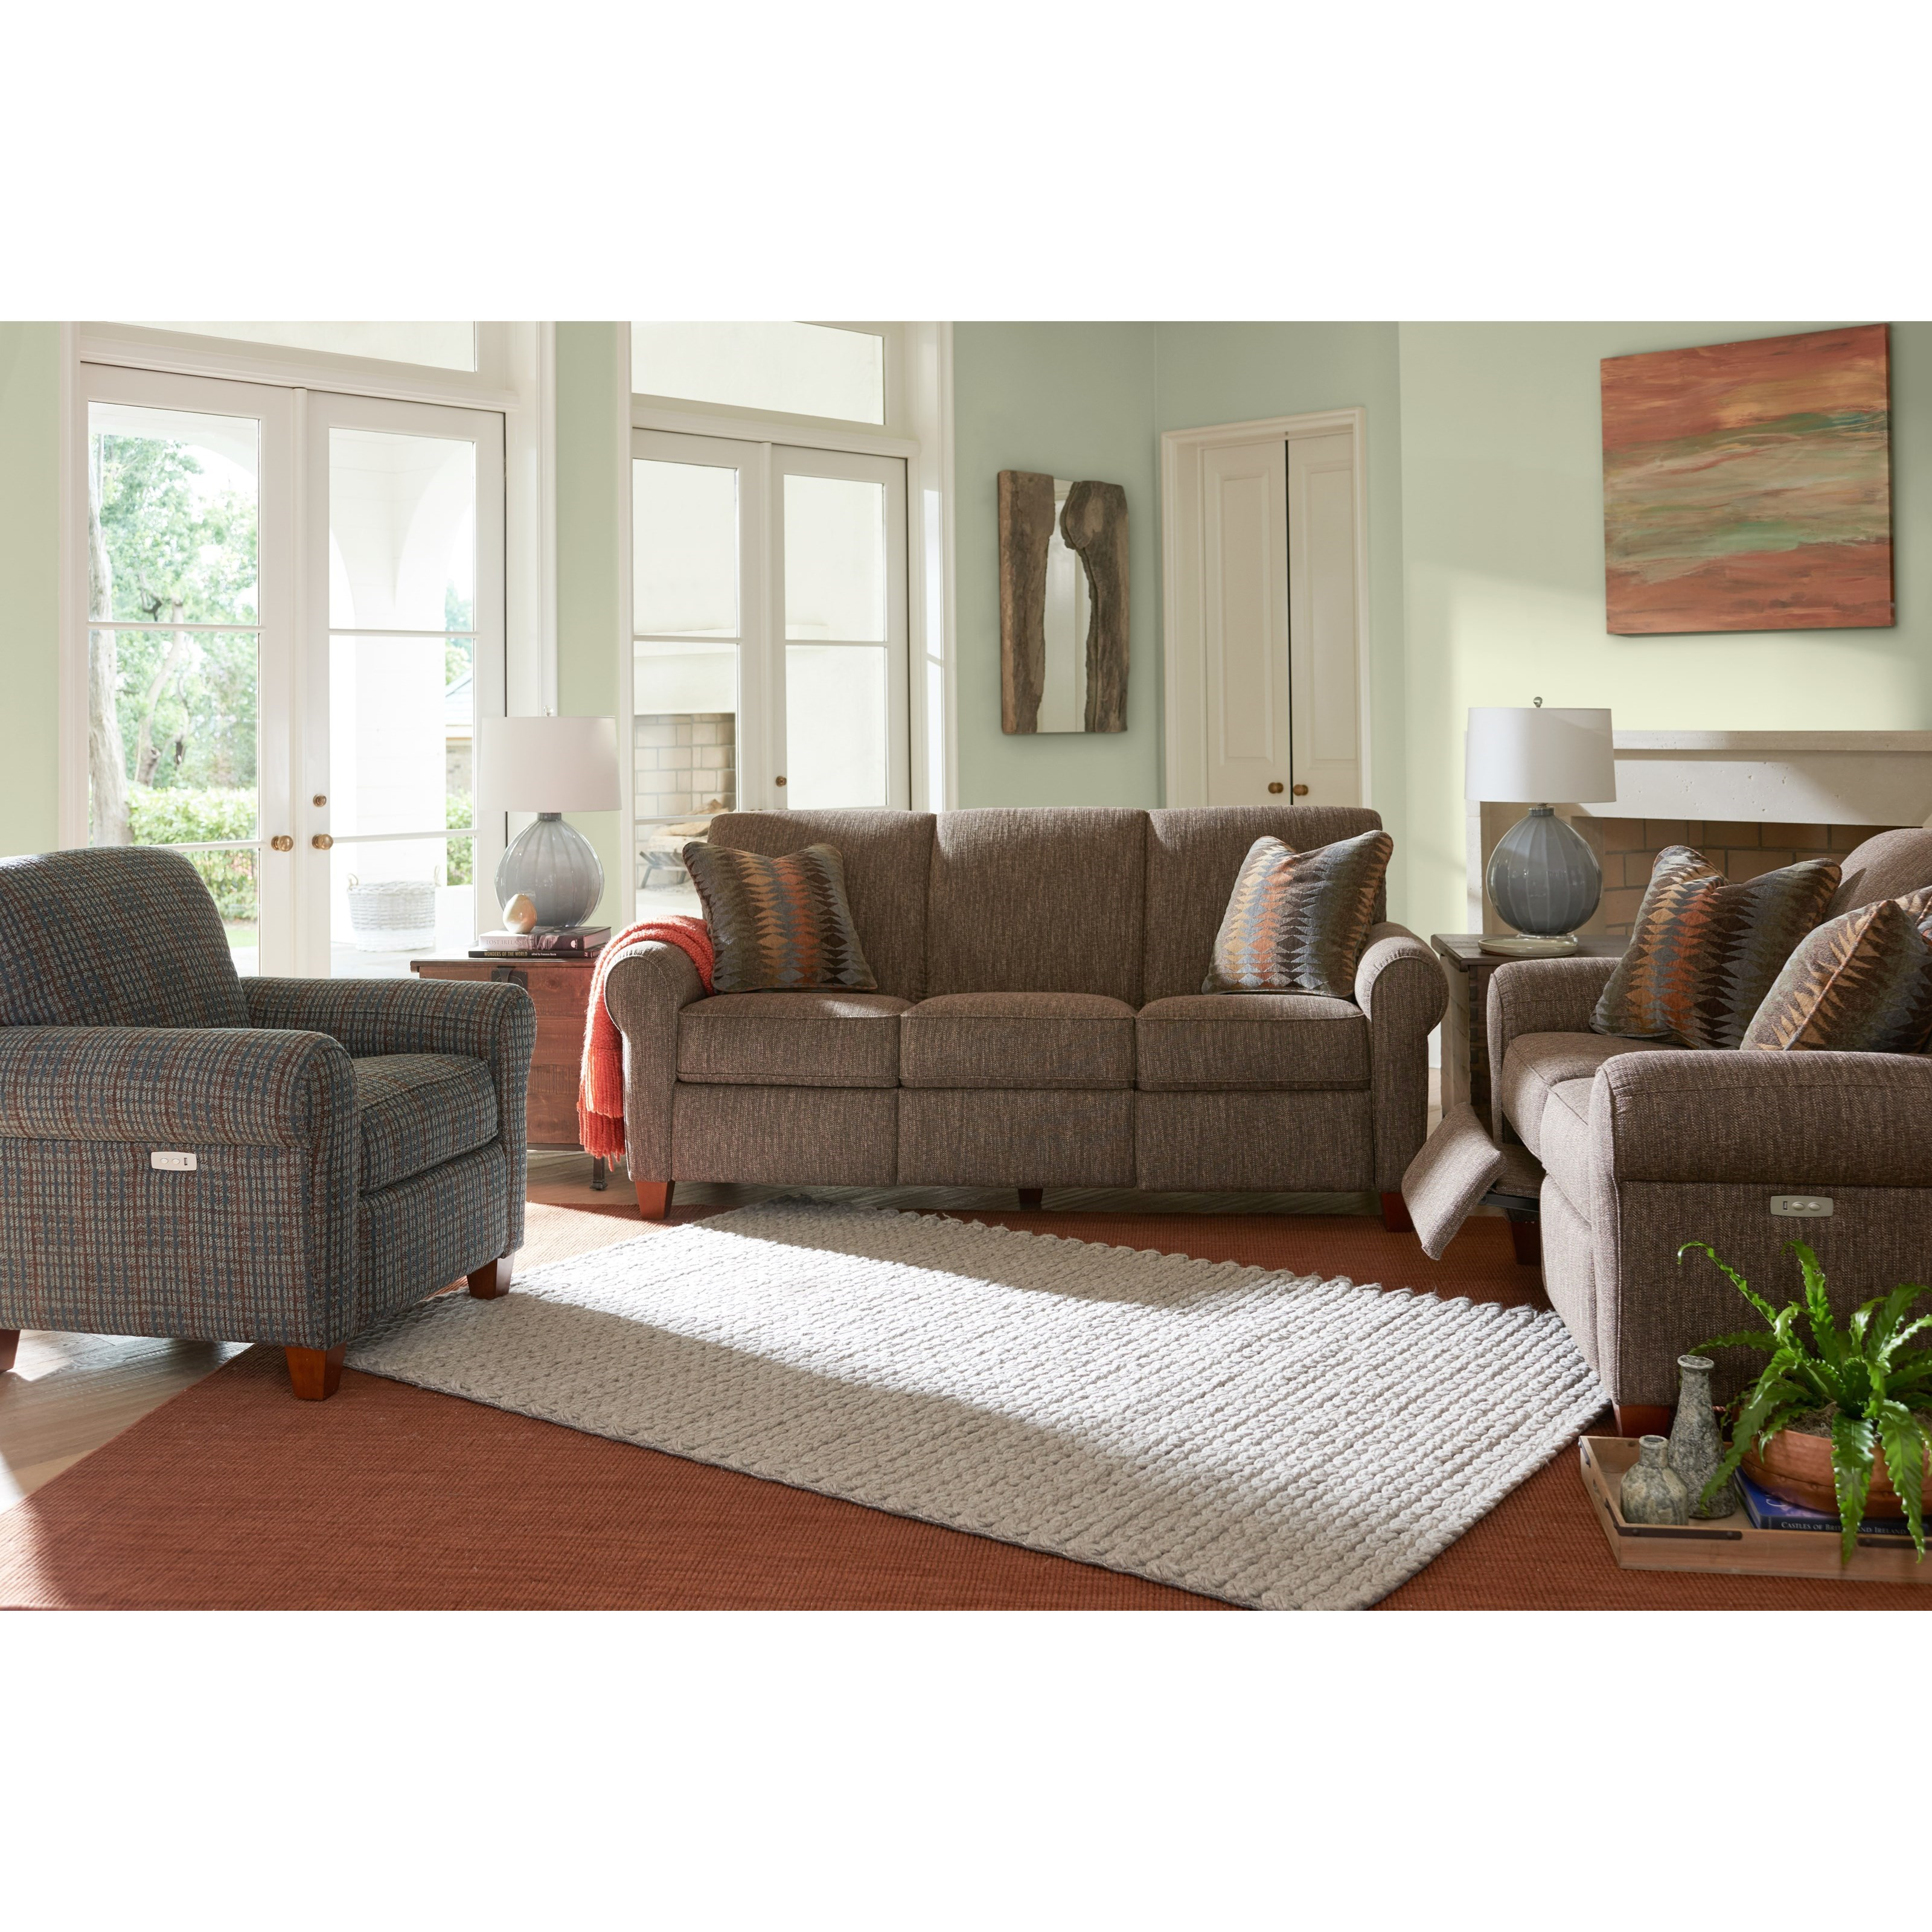 La Z Boy Bennett Duo Power Reclining Sofa with USB  : products2Fla z boy2Fcolor2Fbennett 144560597791p899c148877 b32 from www.knightfurniture.com size 3200 x 3200 jpeg 1550kB